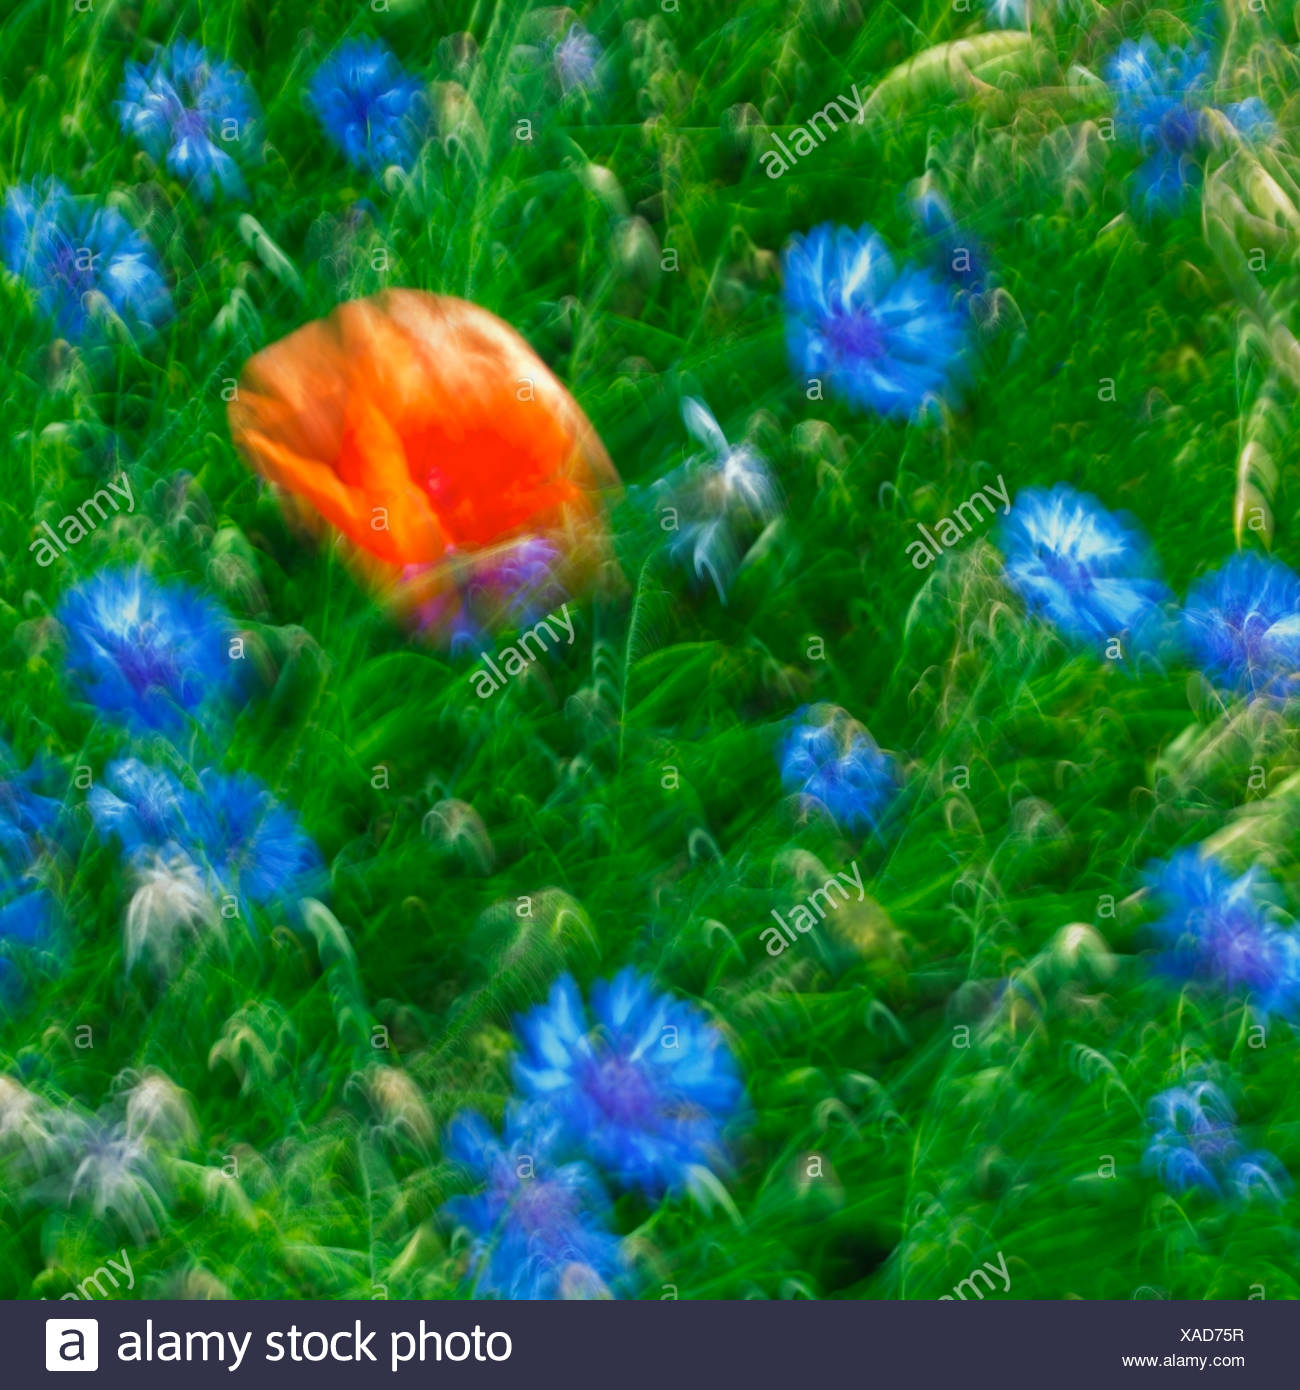 Abstract Image Of A Poppy Flower And Flax Germany Stock Photo